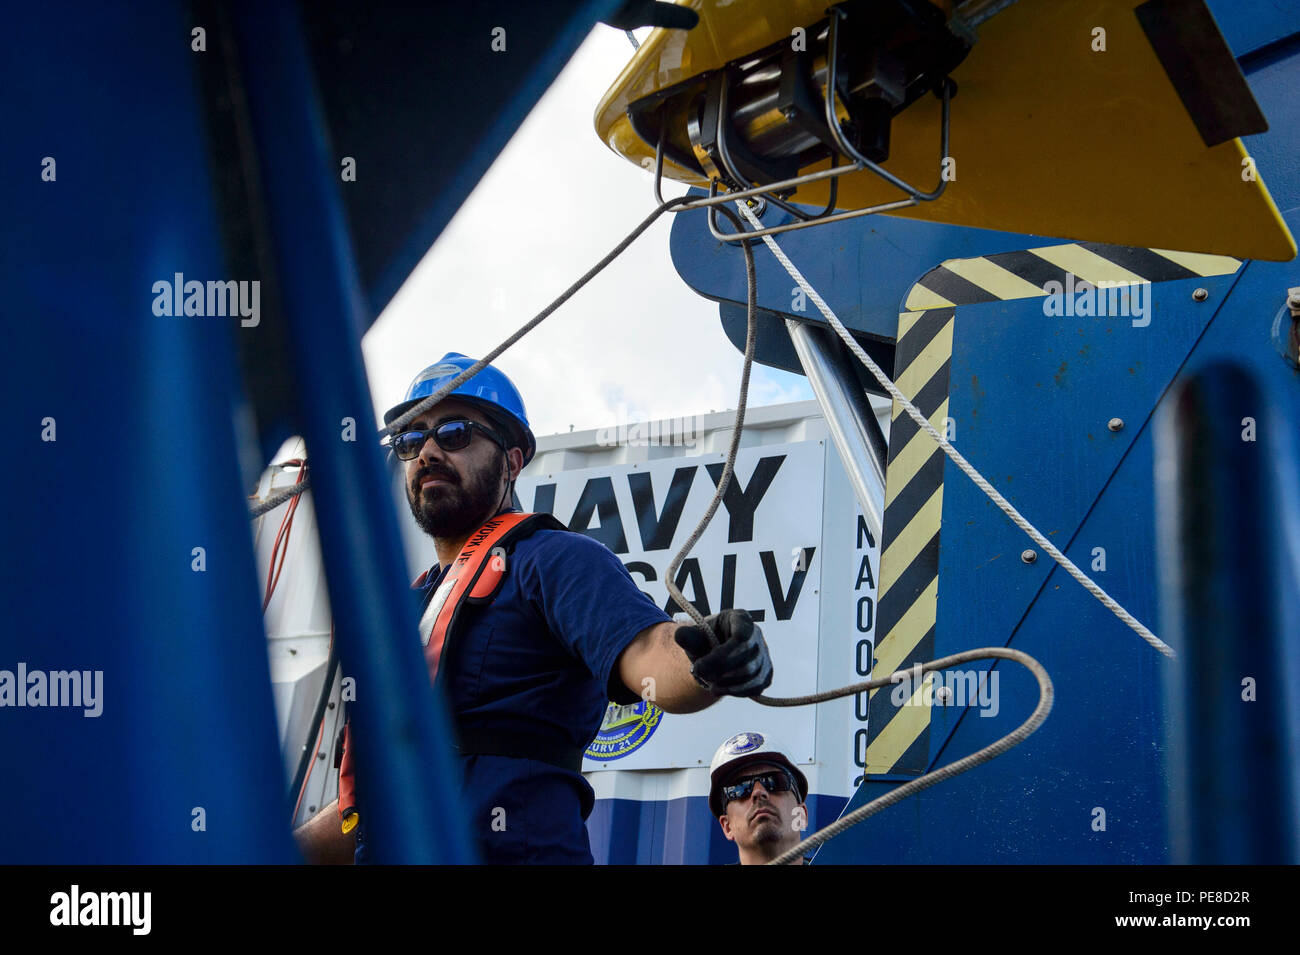 151024-N-RZ218-031   BAHAMAS (Oct. 24, 2015) Steven Benjamin, a contractor with Phoenix International Incorporated, rigs a guideline through the tow pinger locater 25 (TPL 25) aboard USNS Apache (T-ATF 172). USNS Apache departed Norfolk, Va., Oct. 19, to begin searching for wreckage from the missing U.S. Flagged merchant vessel El Faro. The ship is equipped with several pieces of underwater search equipment, including a voyage data recorder locator, side-scan sonar and an underwater remote operated vehicle. The Navy's mission will be to first locate the ship and, if possible, to retrieve the v - Stock Image